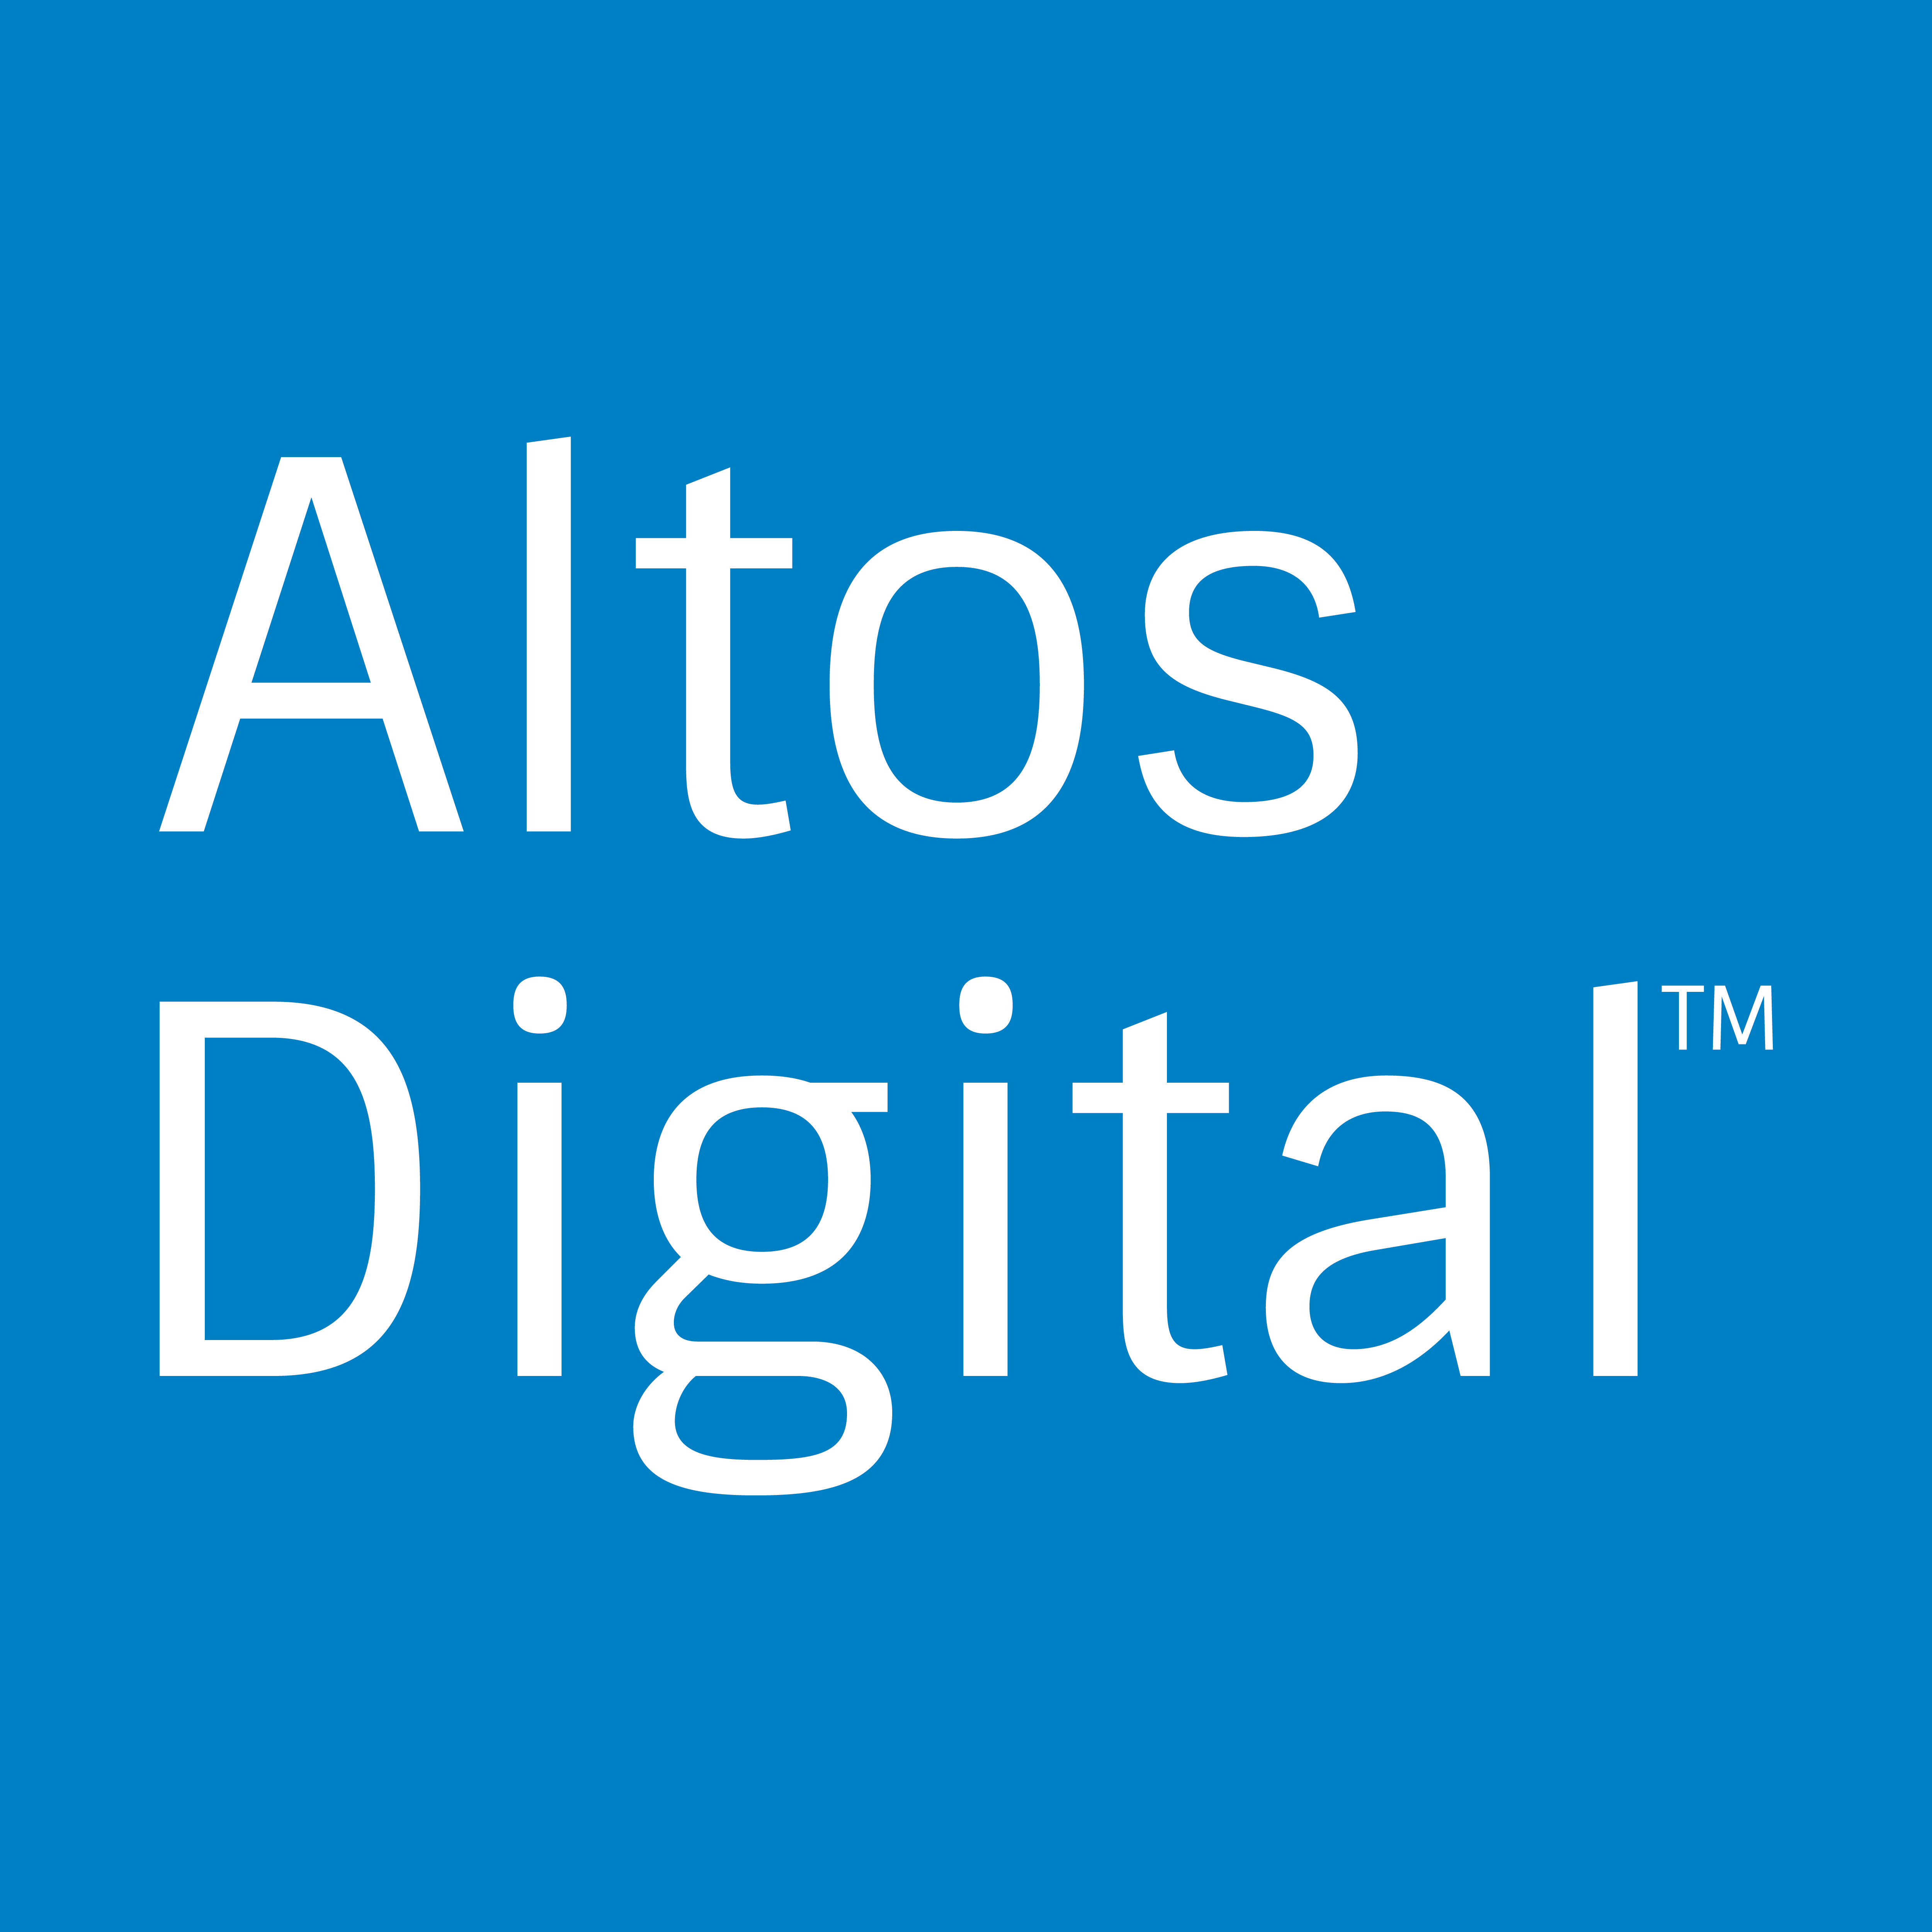 altos-digital-logo.png